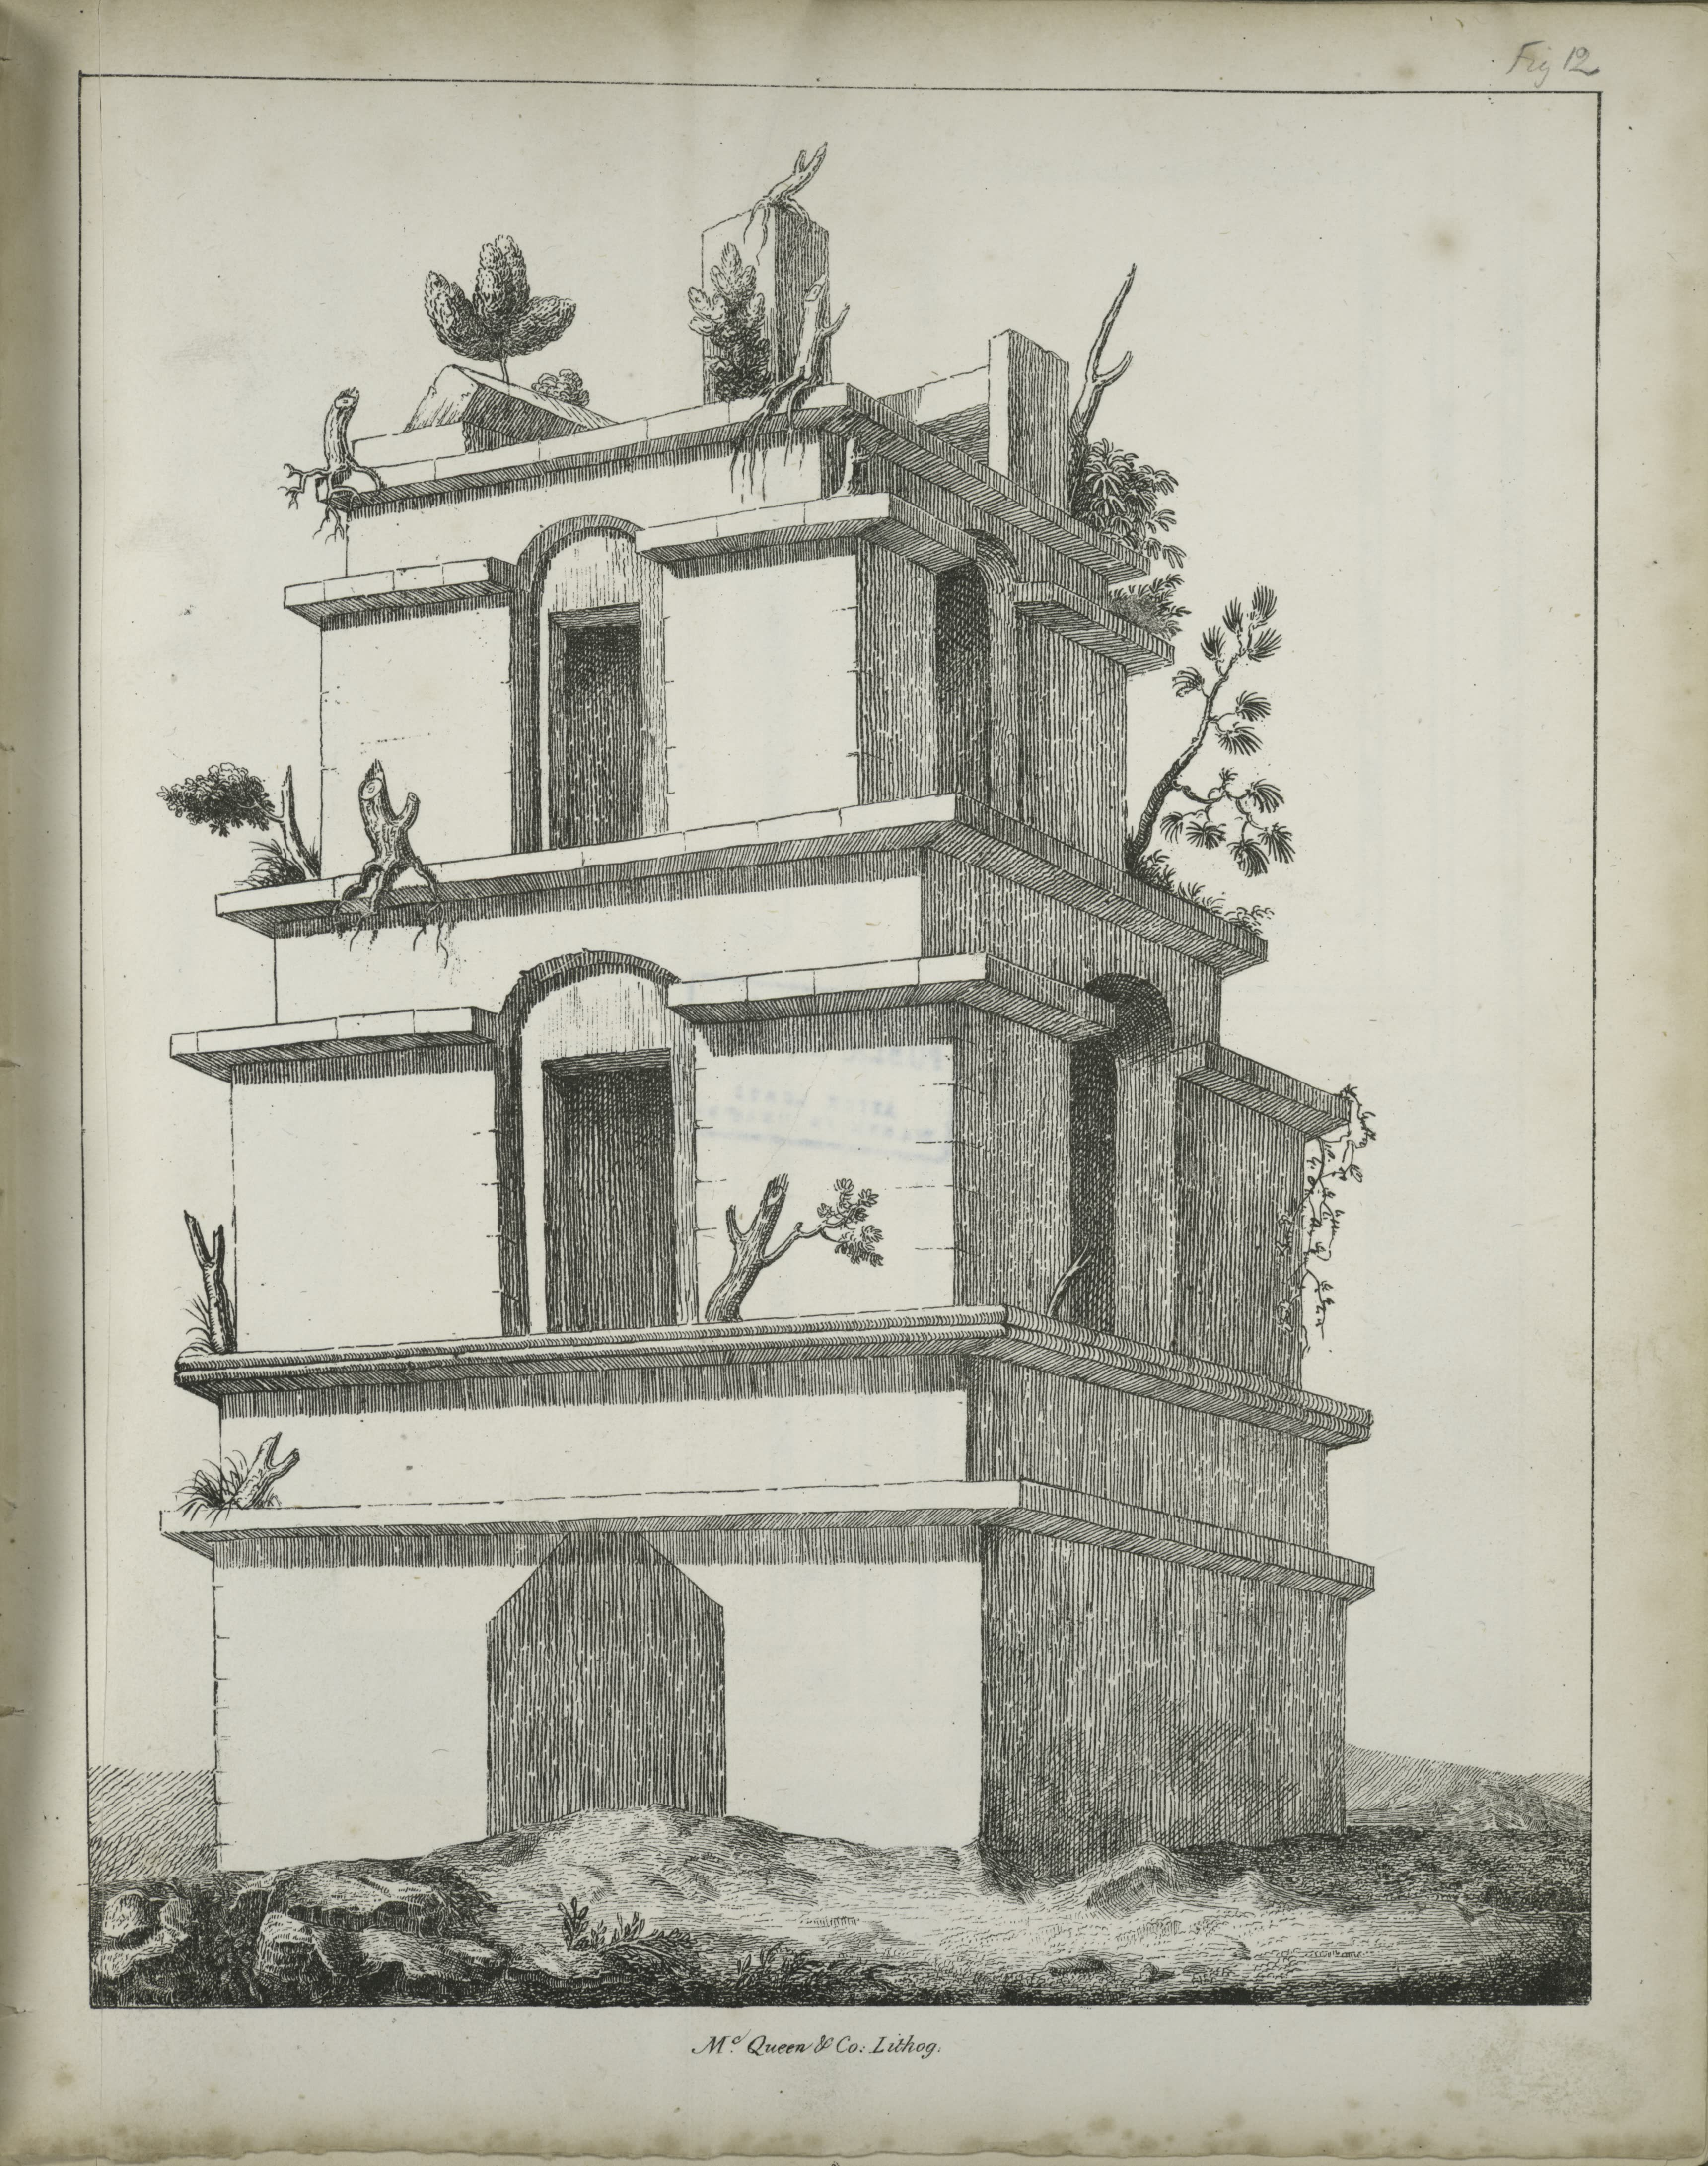 Description of the Ruins of an Ancient City - Stone tower with three floors (1822)